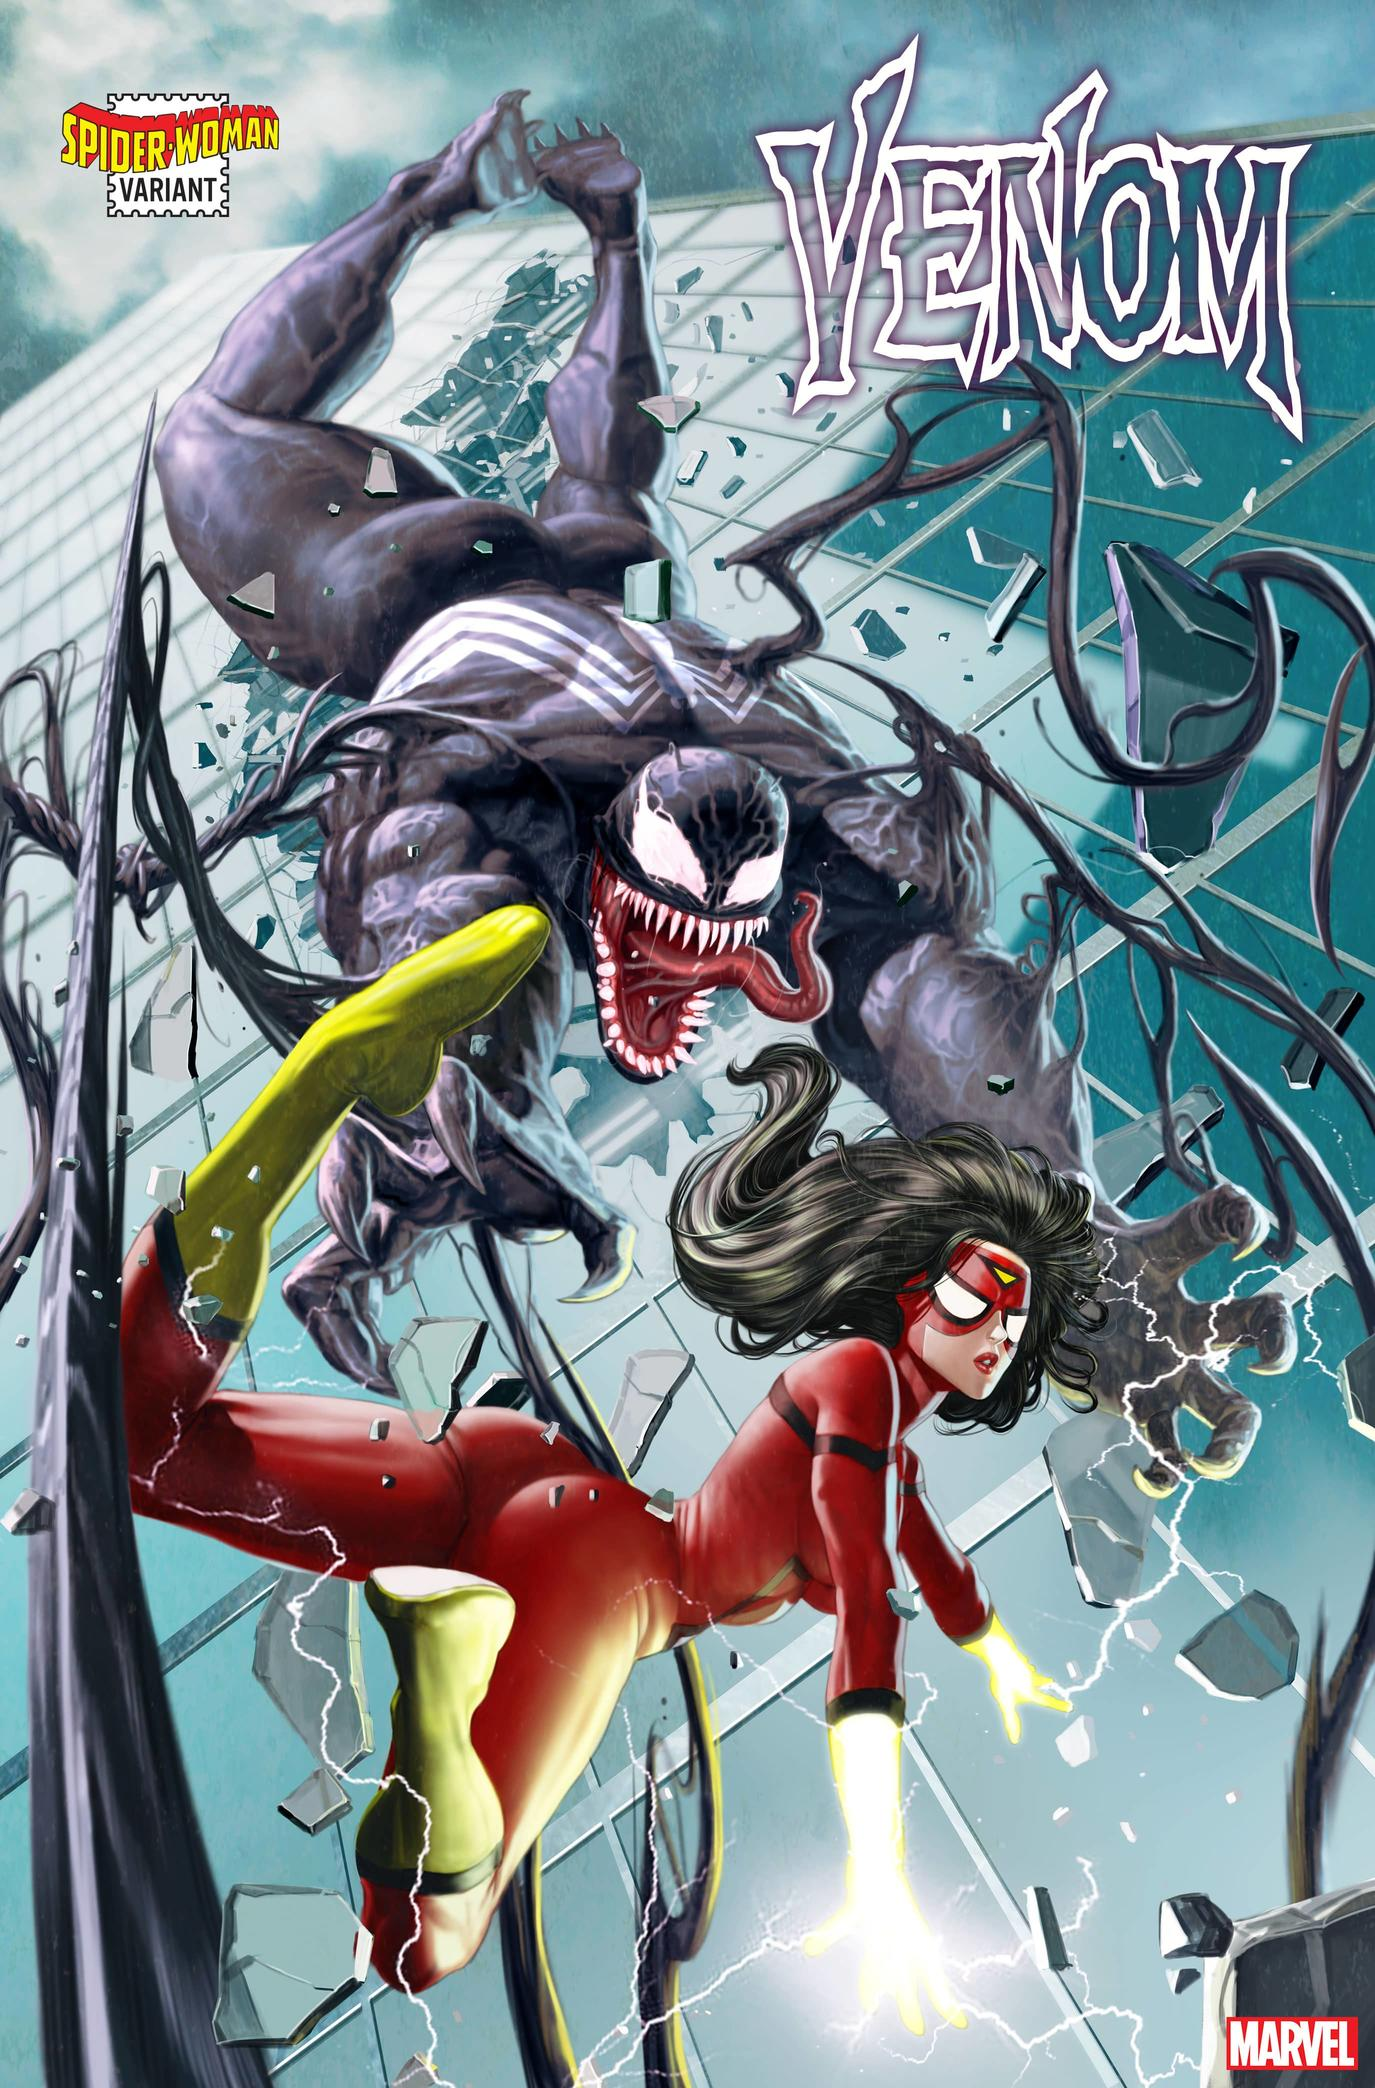 VENOM #24 SPIDER-WOMAN VARIANT by ROCK-HE KIM